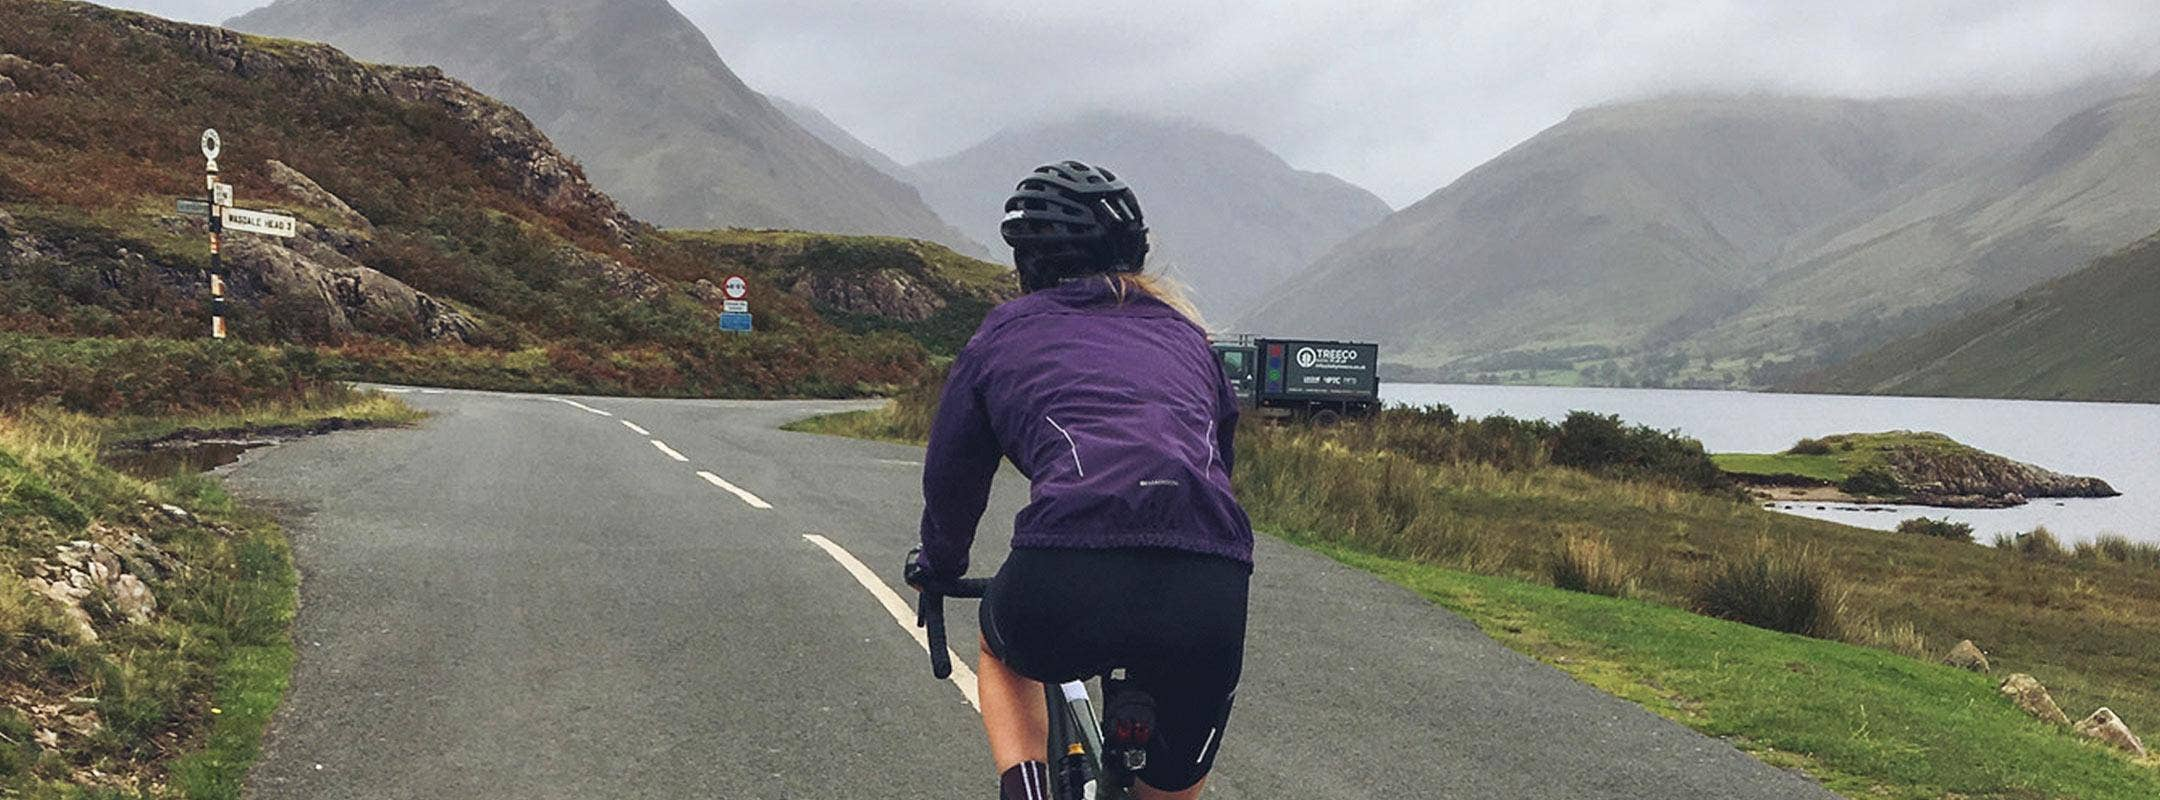 Three Peaks Cycling Challenge